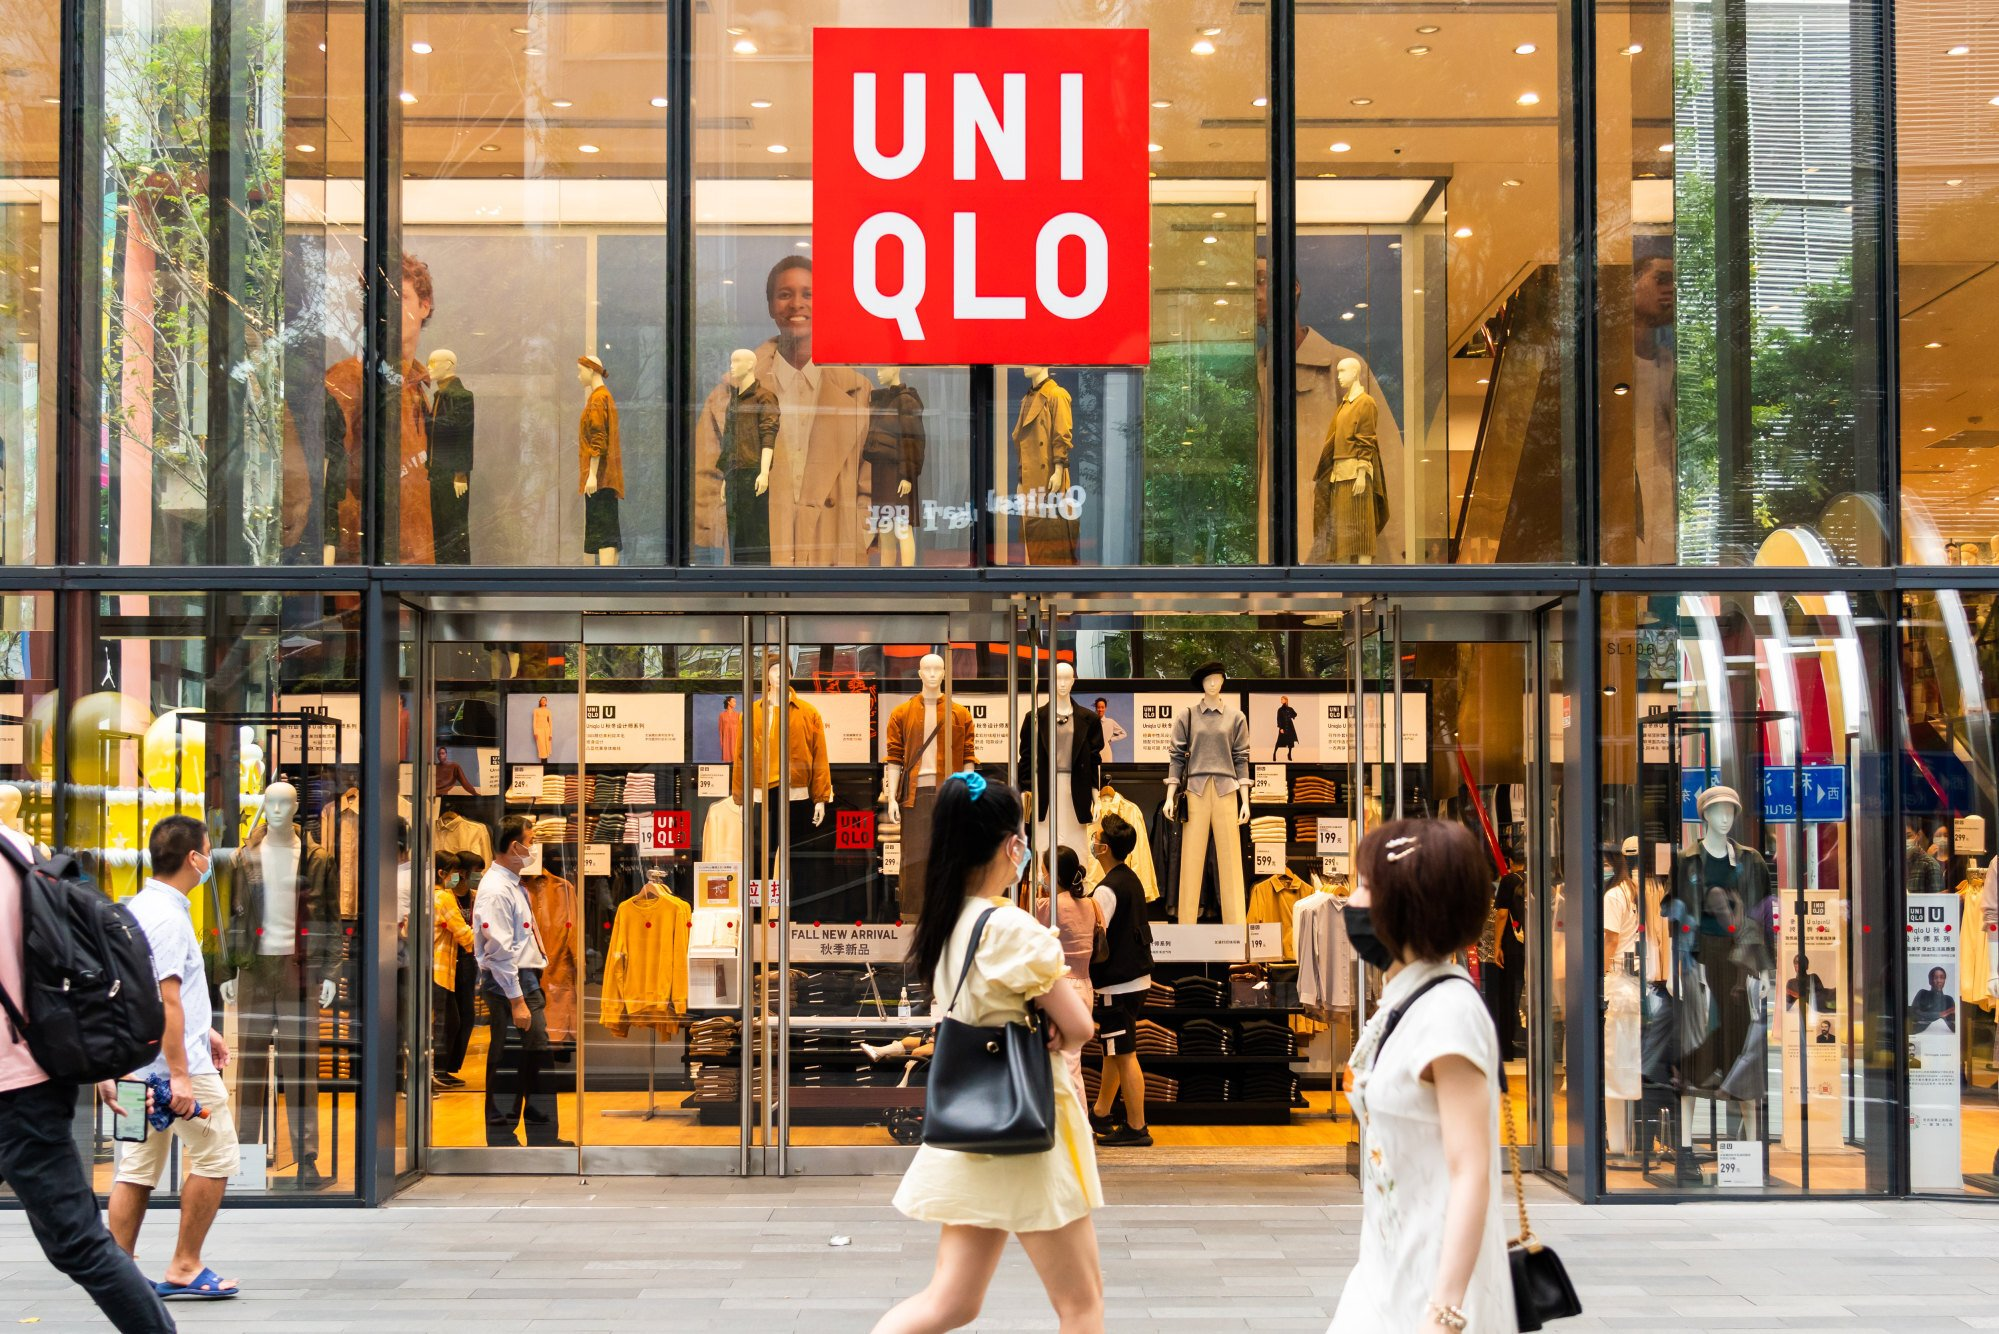 UNIQLO workers have described adult women attending changing rooms and damaging clothes meant for small children. Photo: Getty